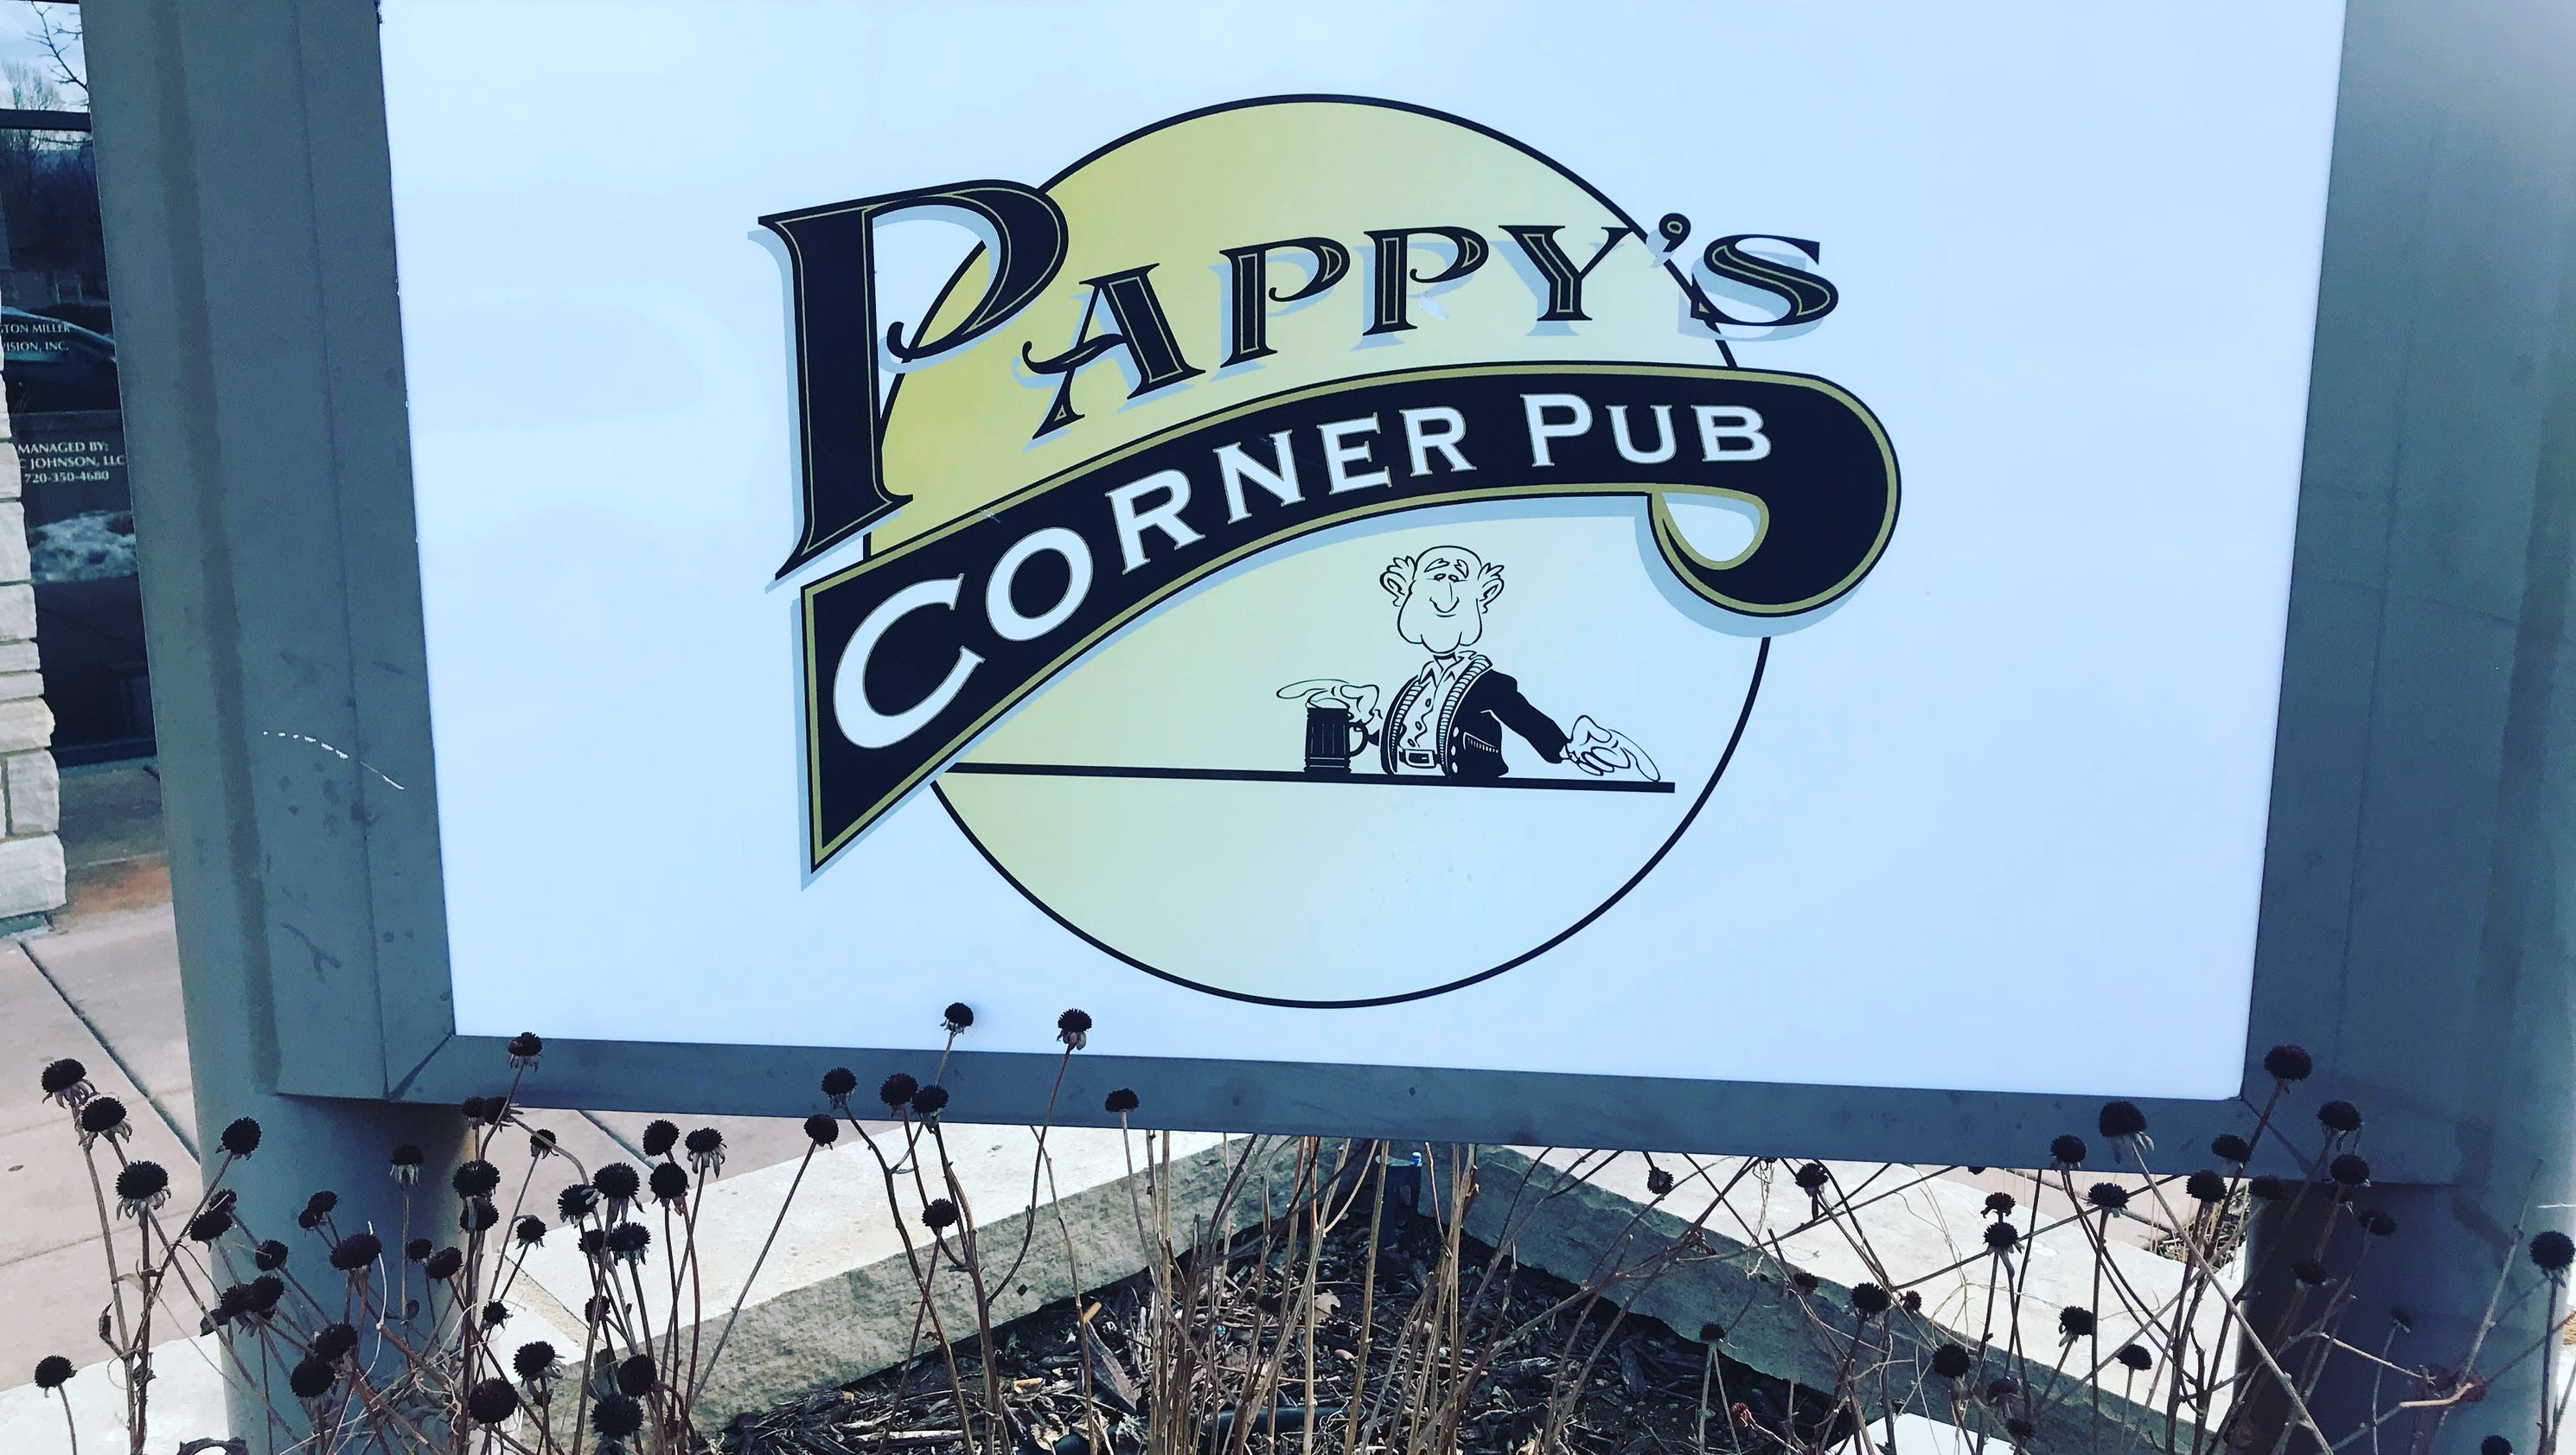 Liquor license suspended at pappys corner pub starting monday sciox Gallery